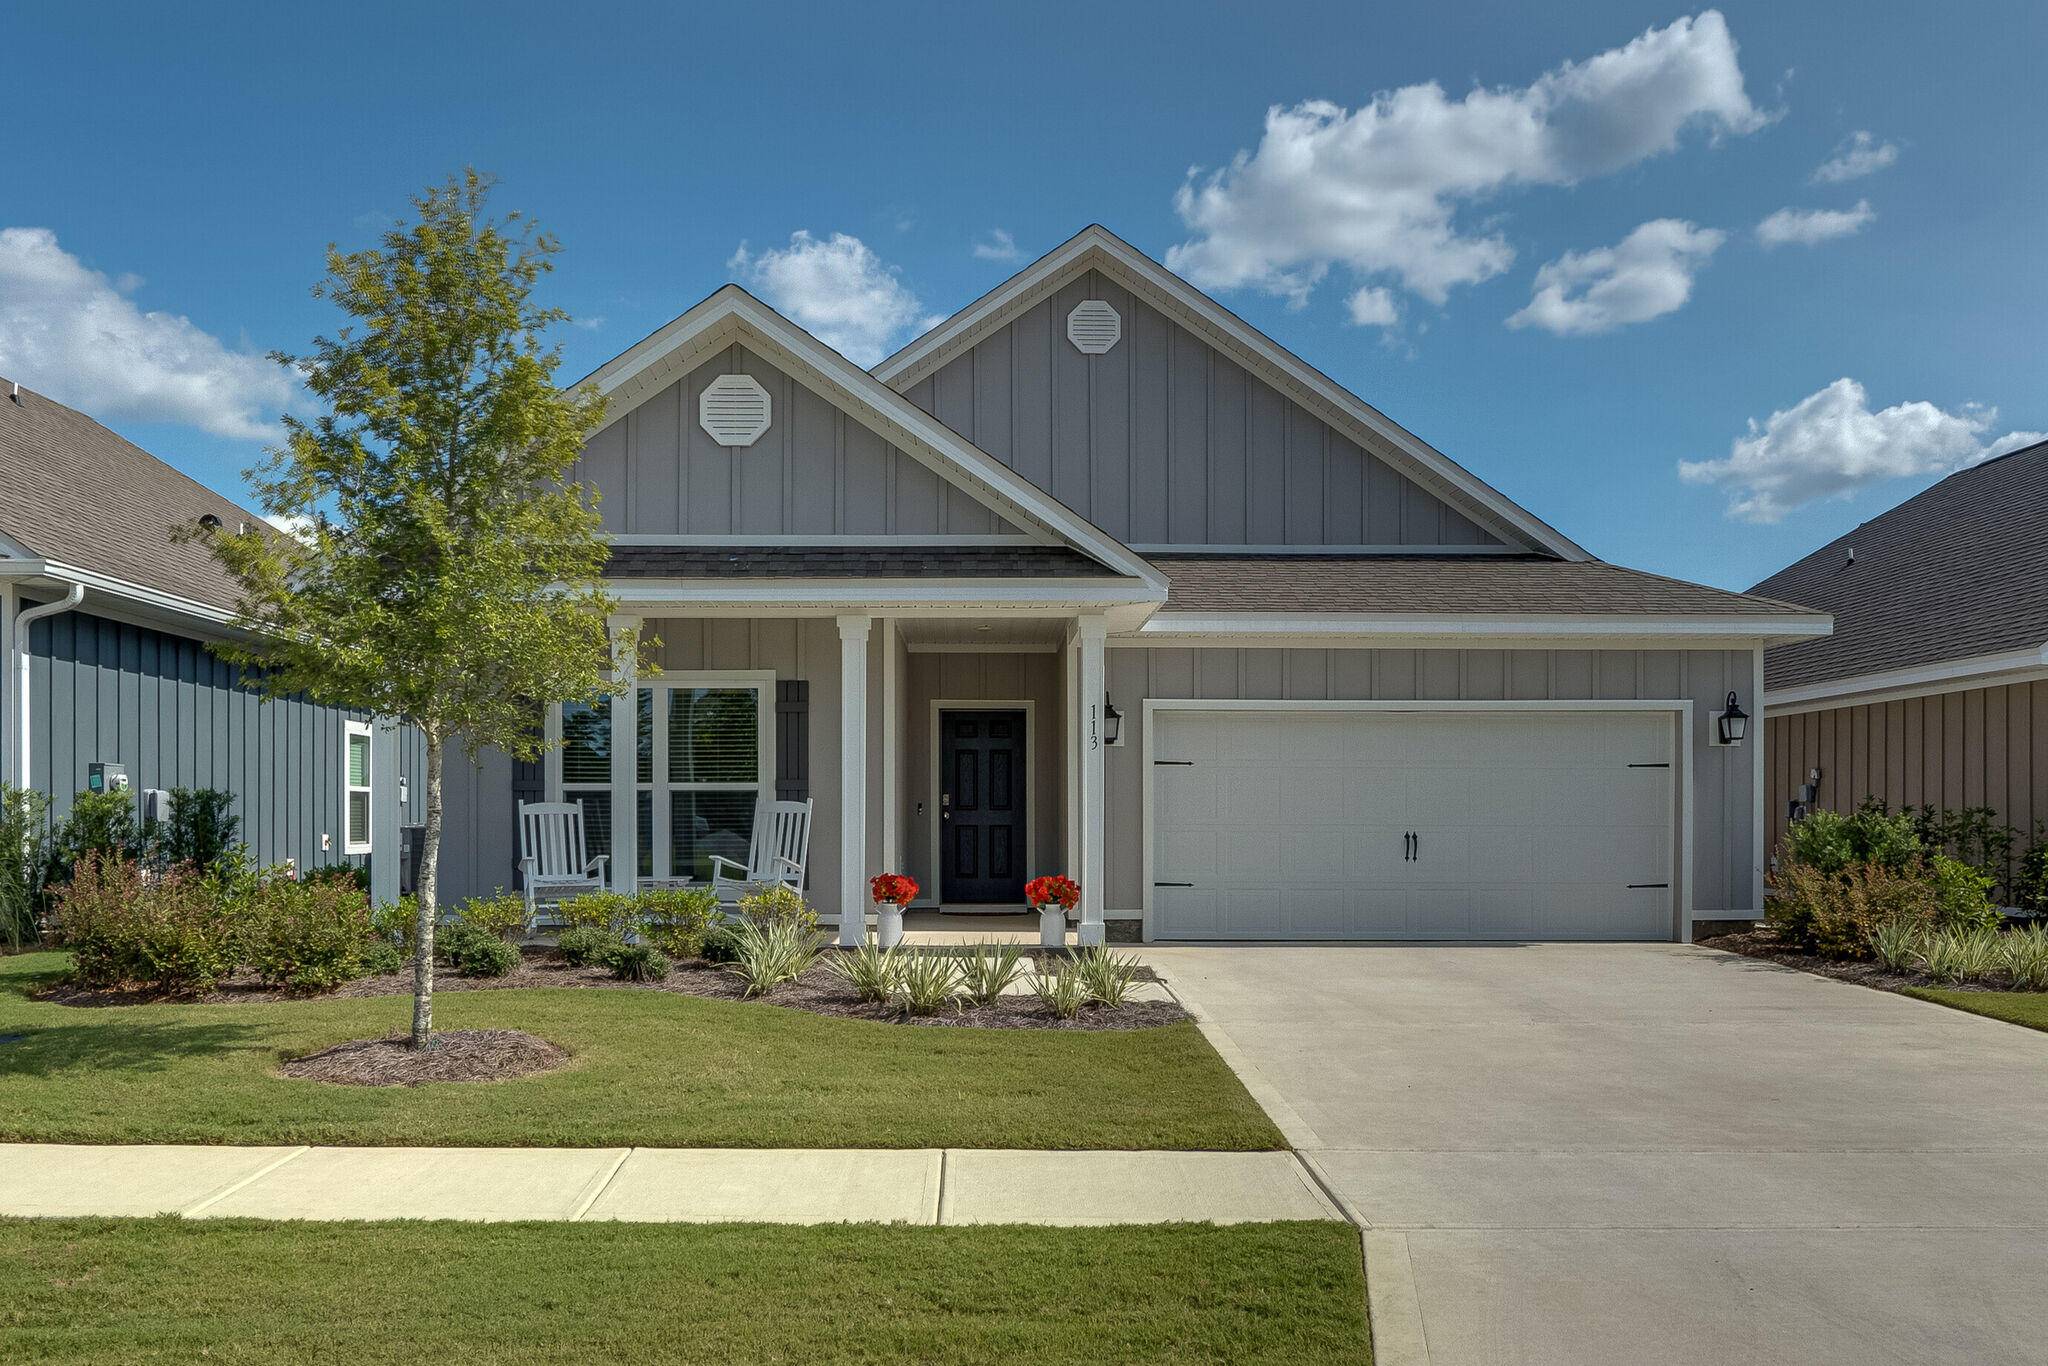 Photo of home for sale at 113 Dusky, Freeport FL